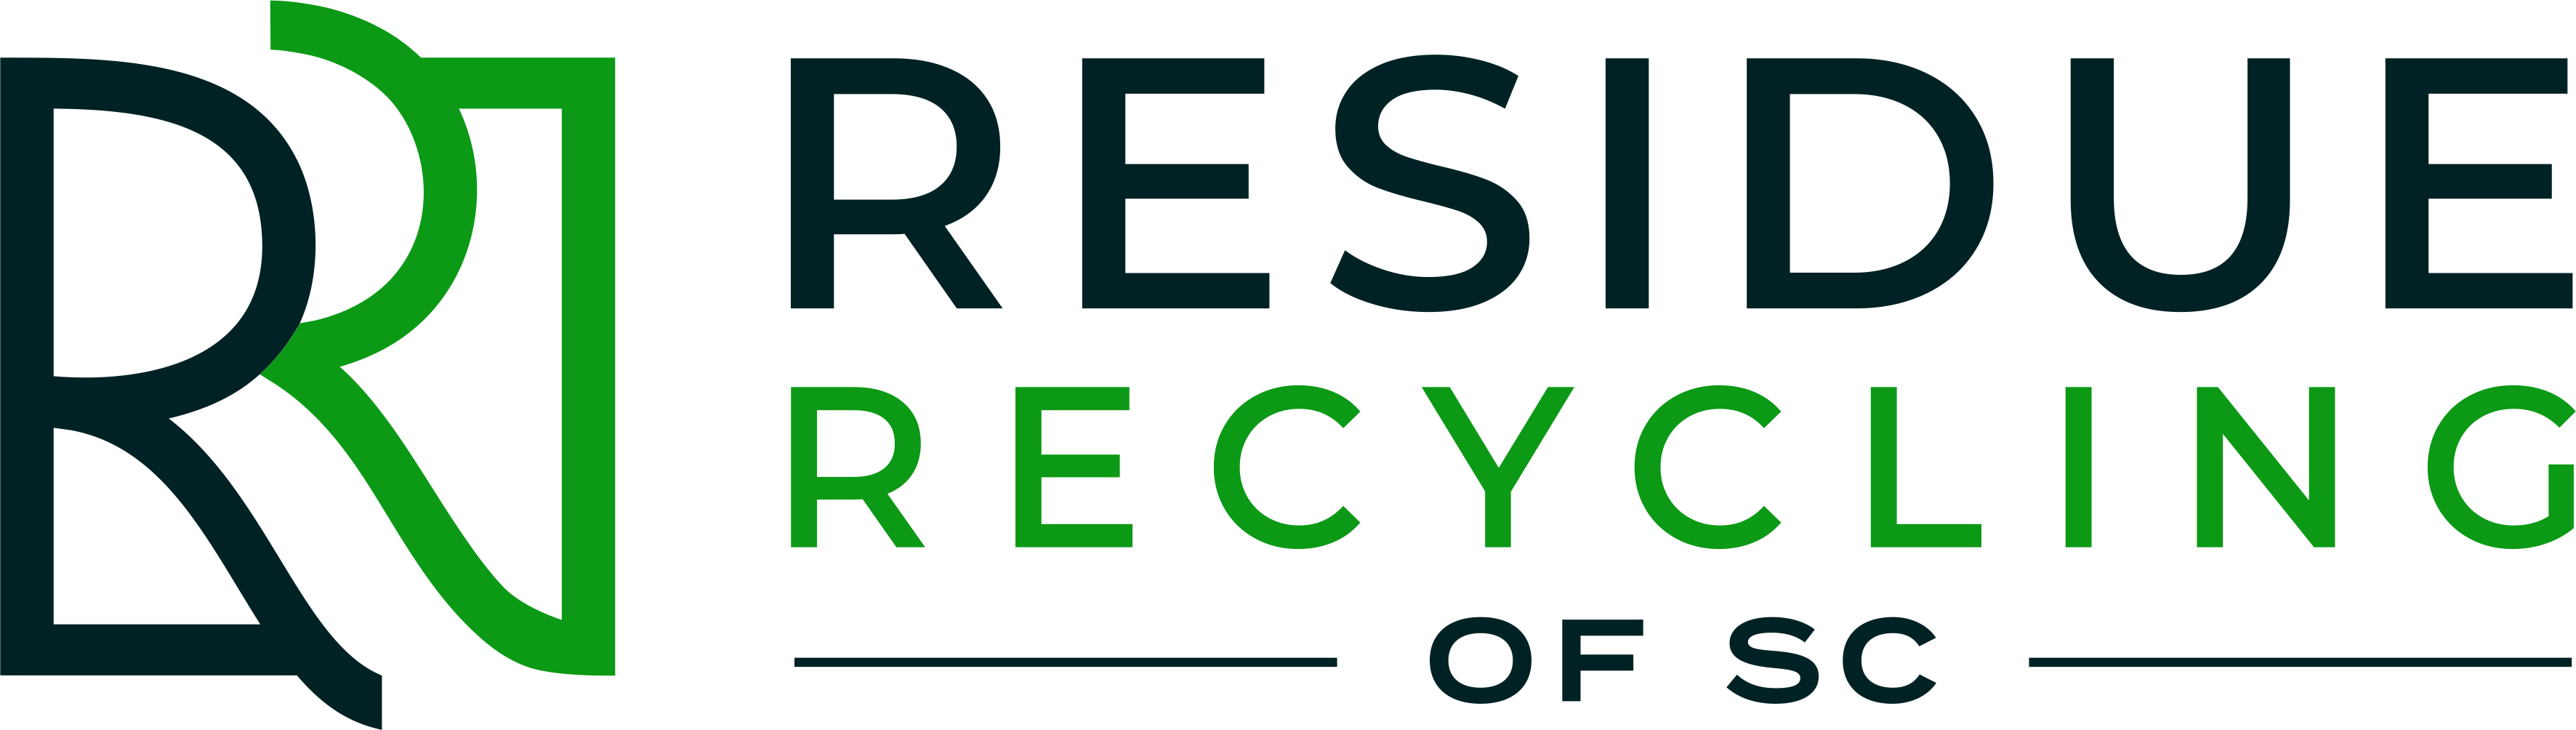 Residue Recycling in SC - Postindustrial Thermoplastic